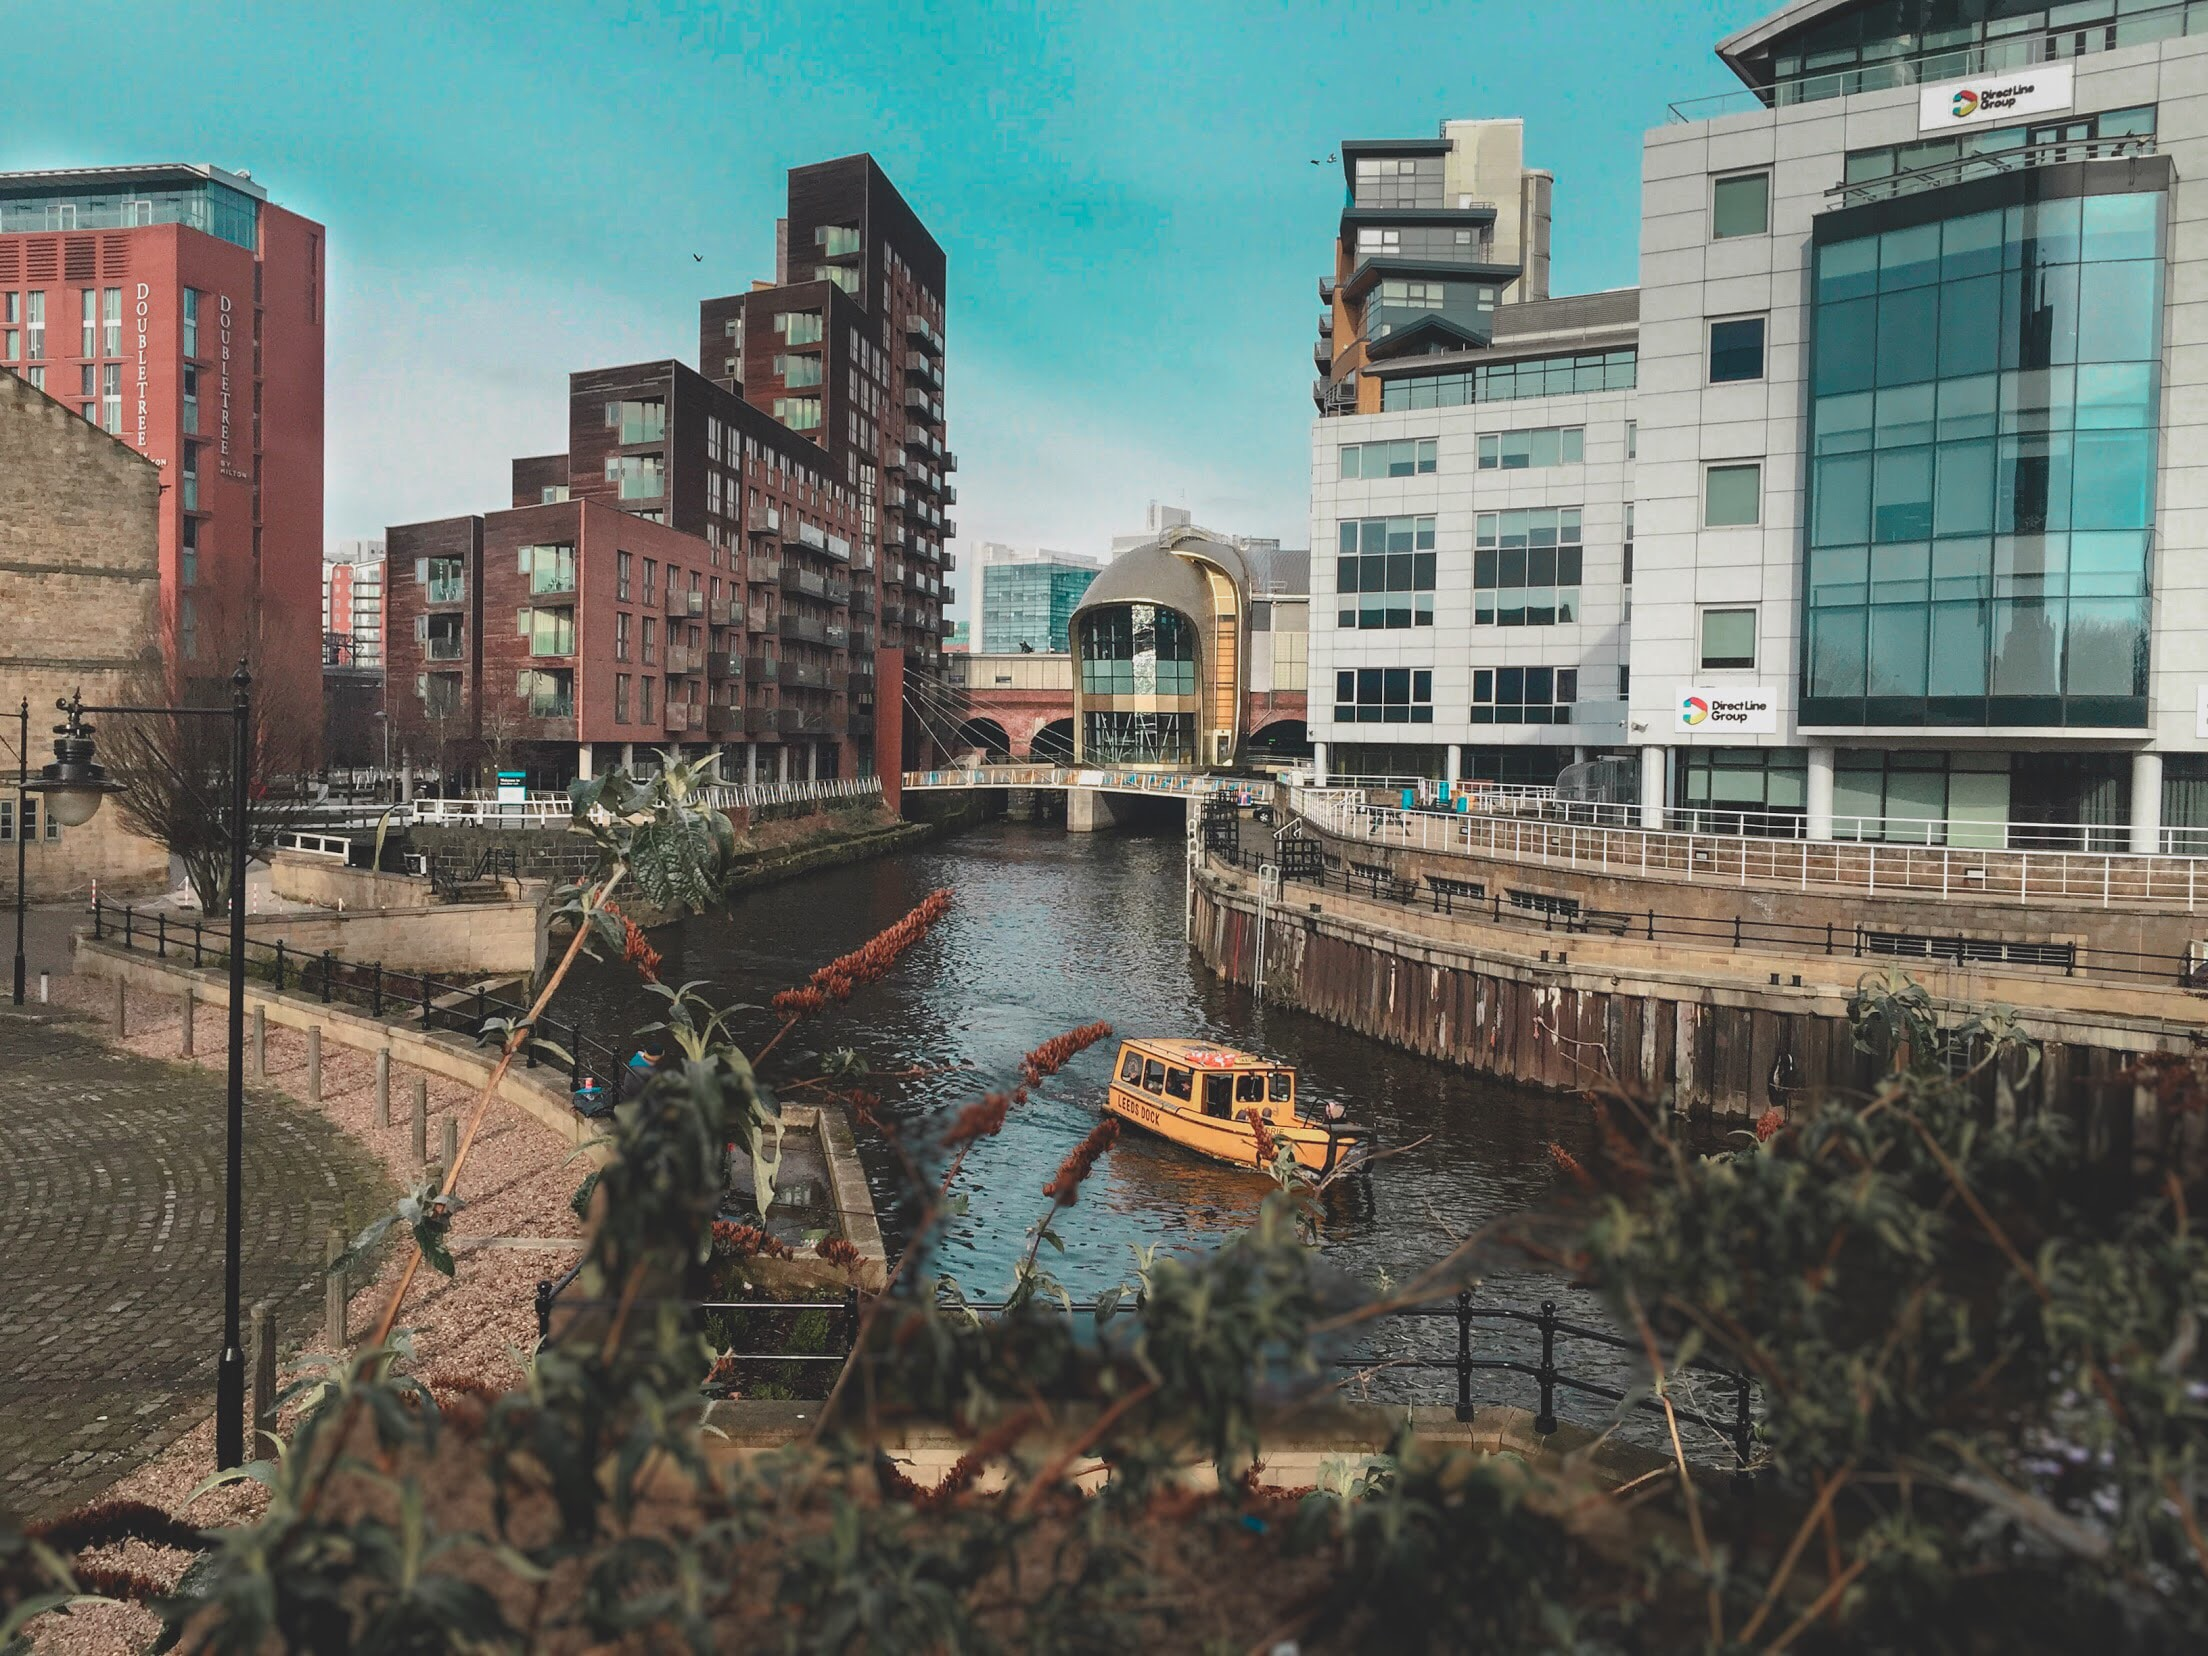 View of a canal and buildings in Leeds, United Kingdom, during mid afternoon.